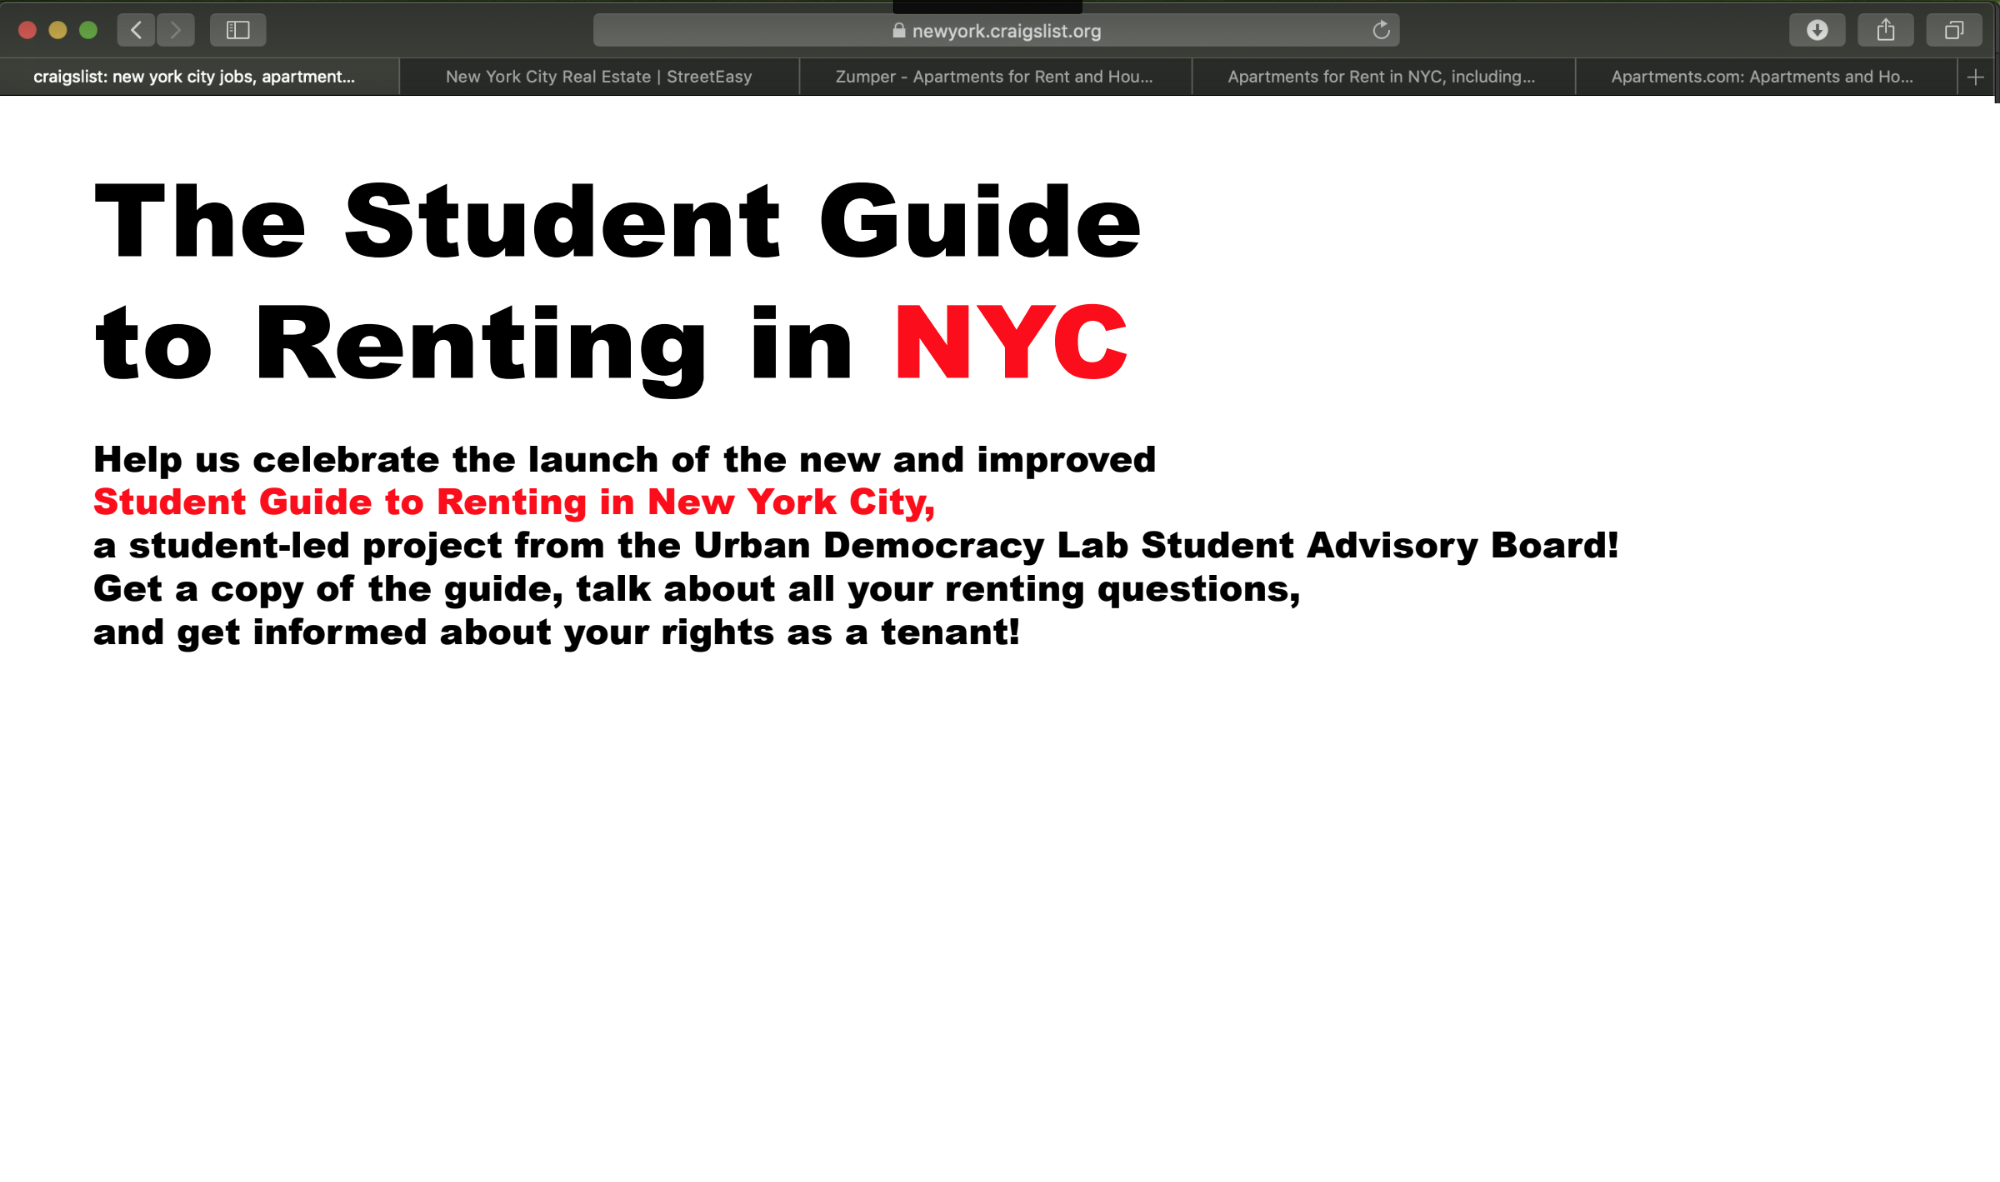 Student Guide to Renting in New York City Launch